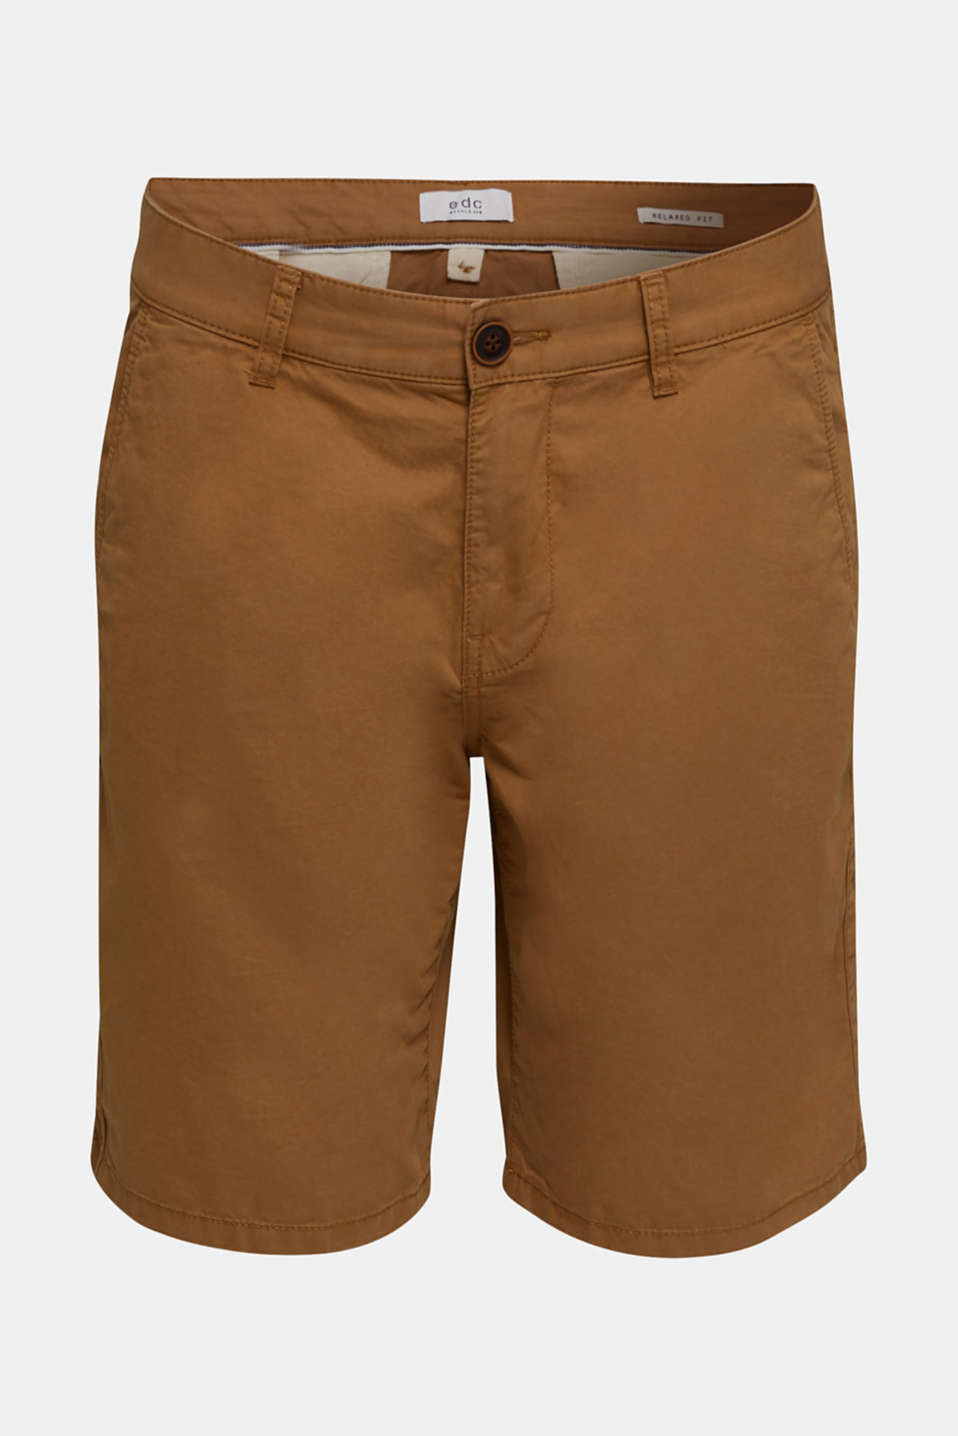 shorts in 100% cotton, CAMEL 2, detail image number 5